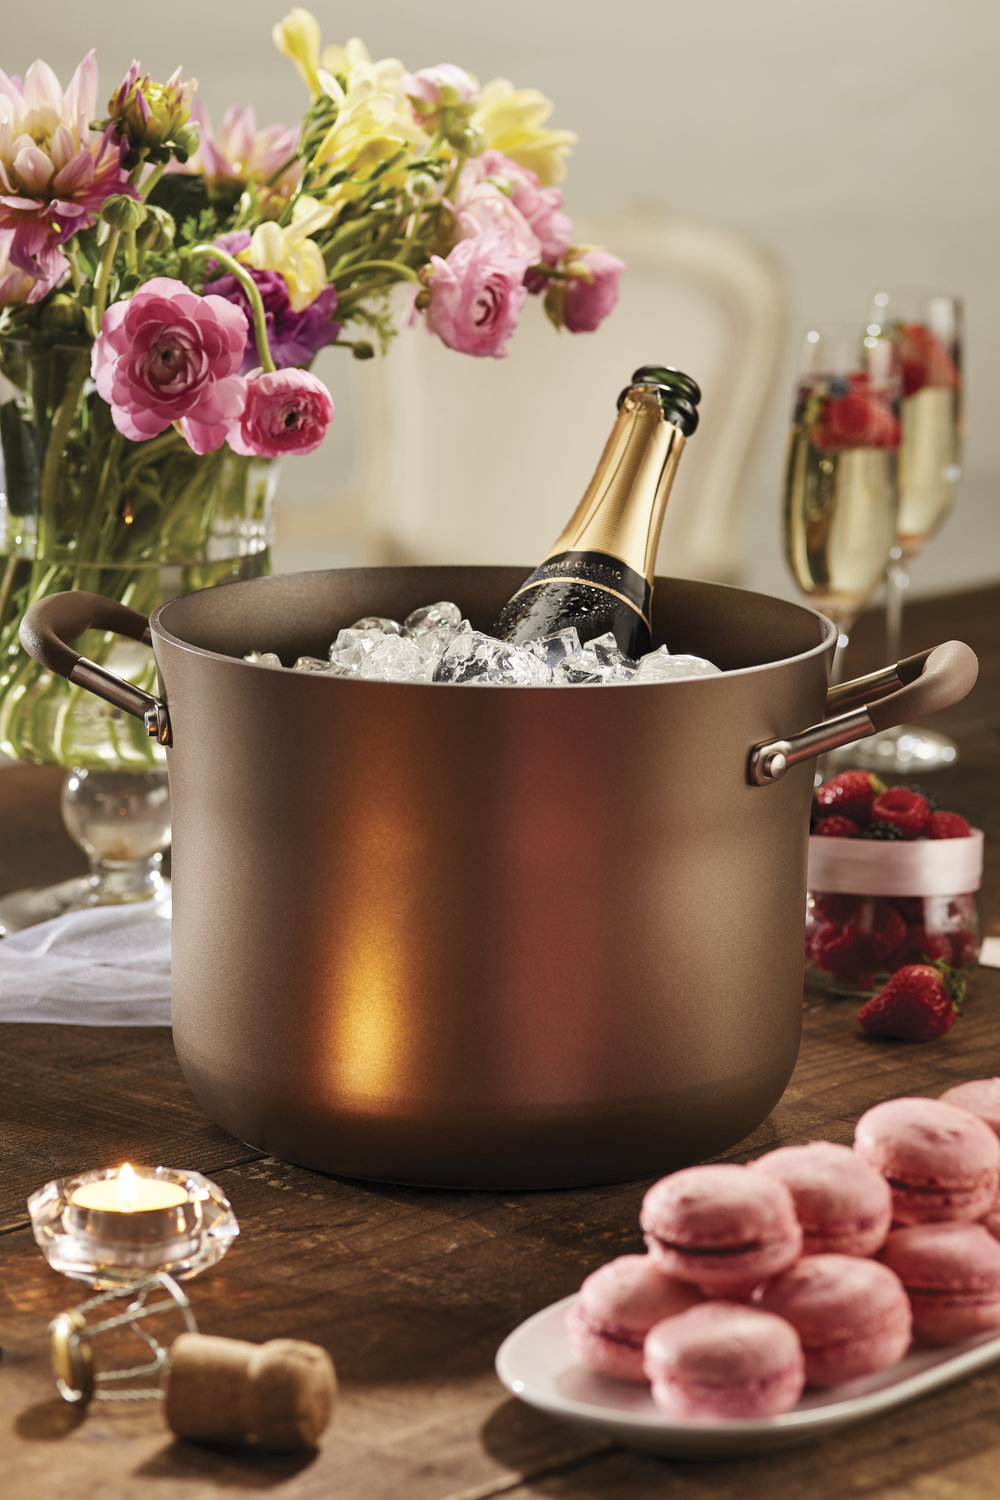 Wedding Registry Cookware - What pots and pans should I register for? - Anolon Cookware Review